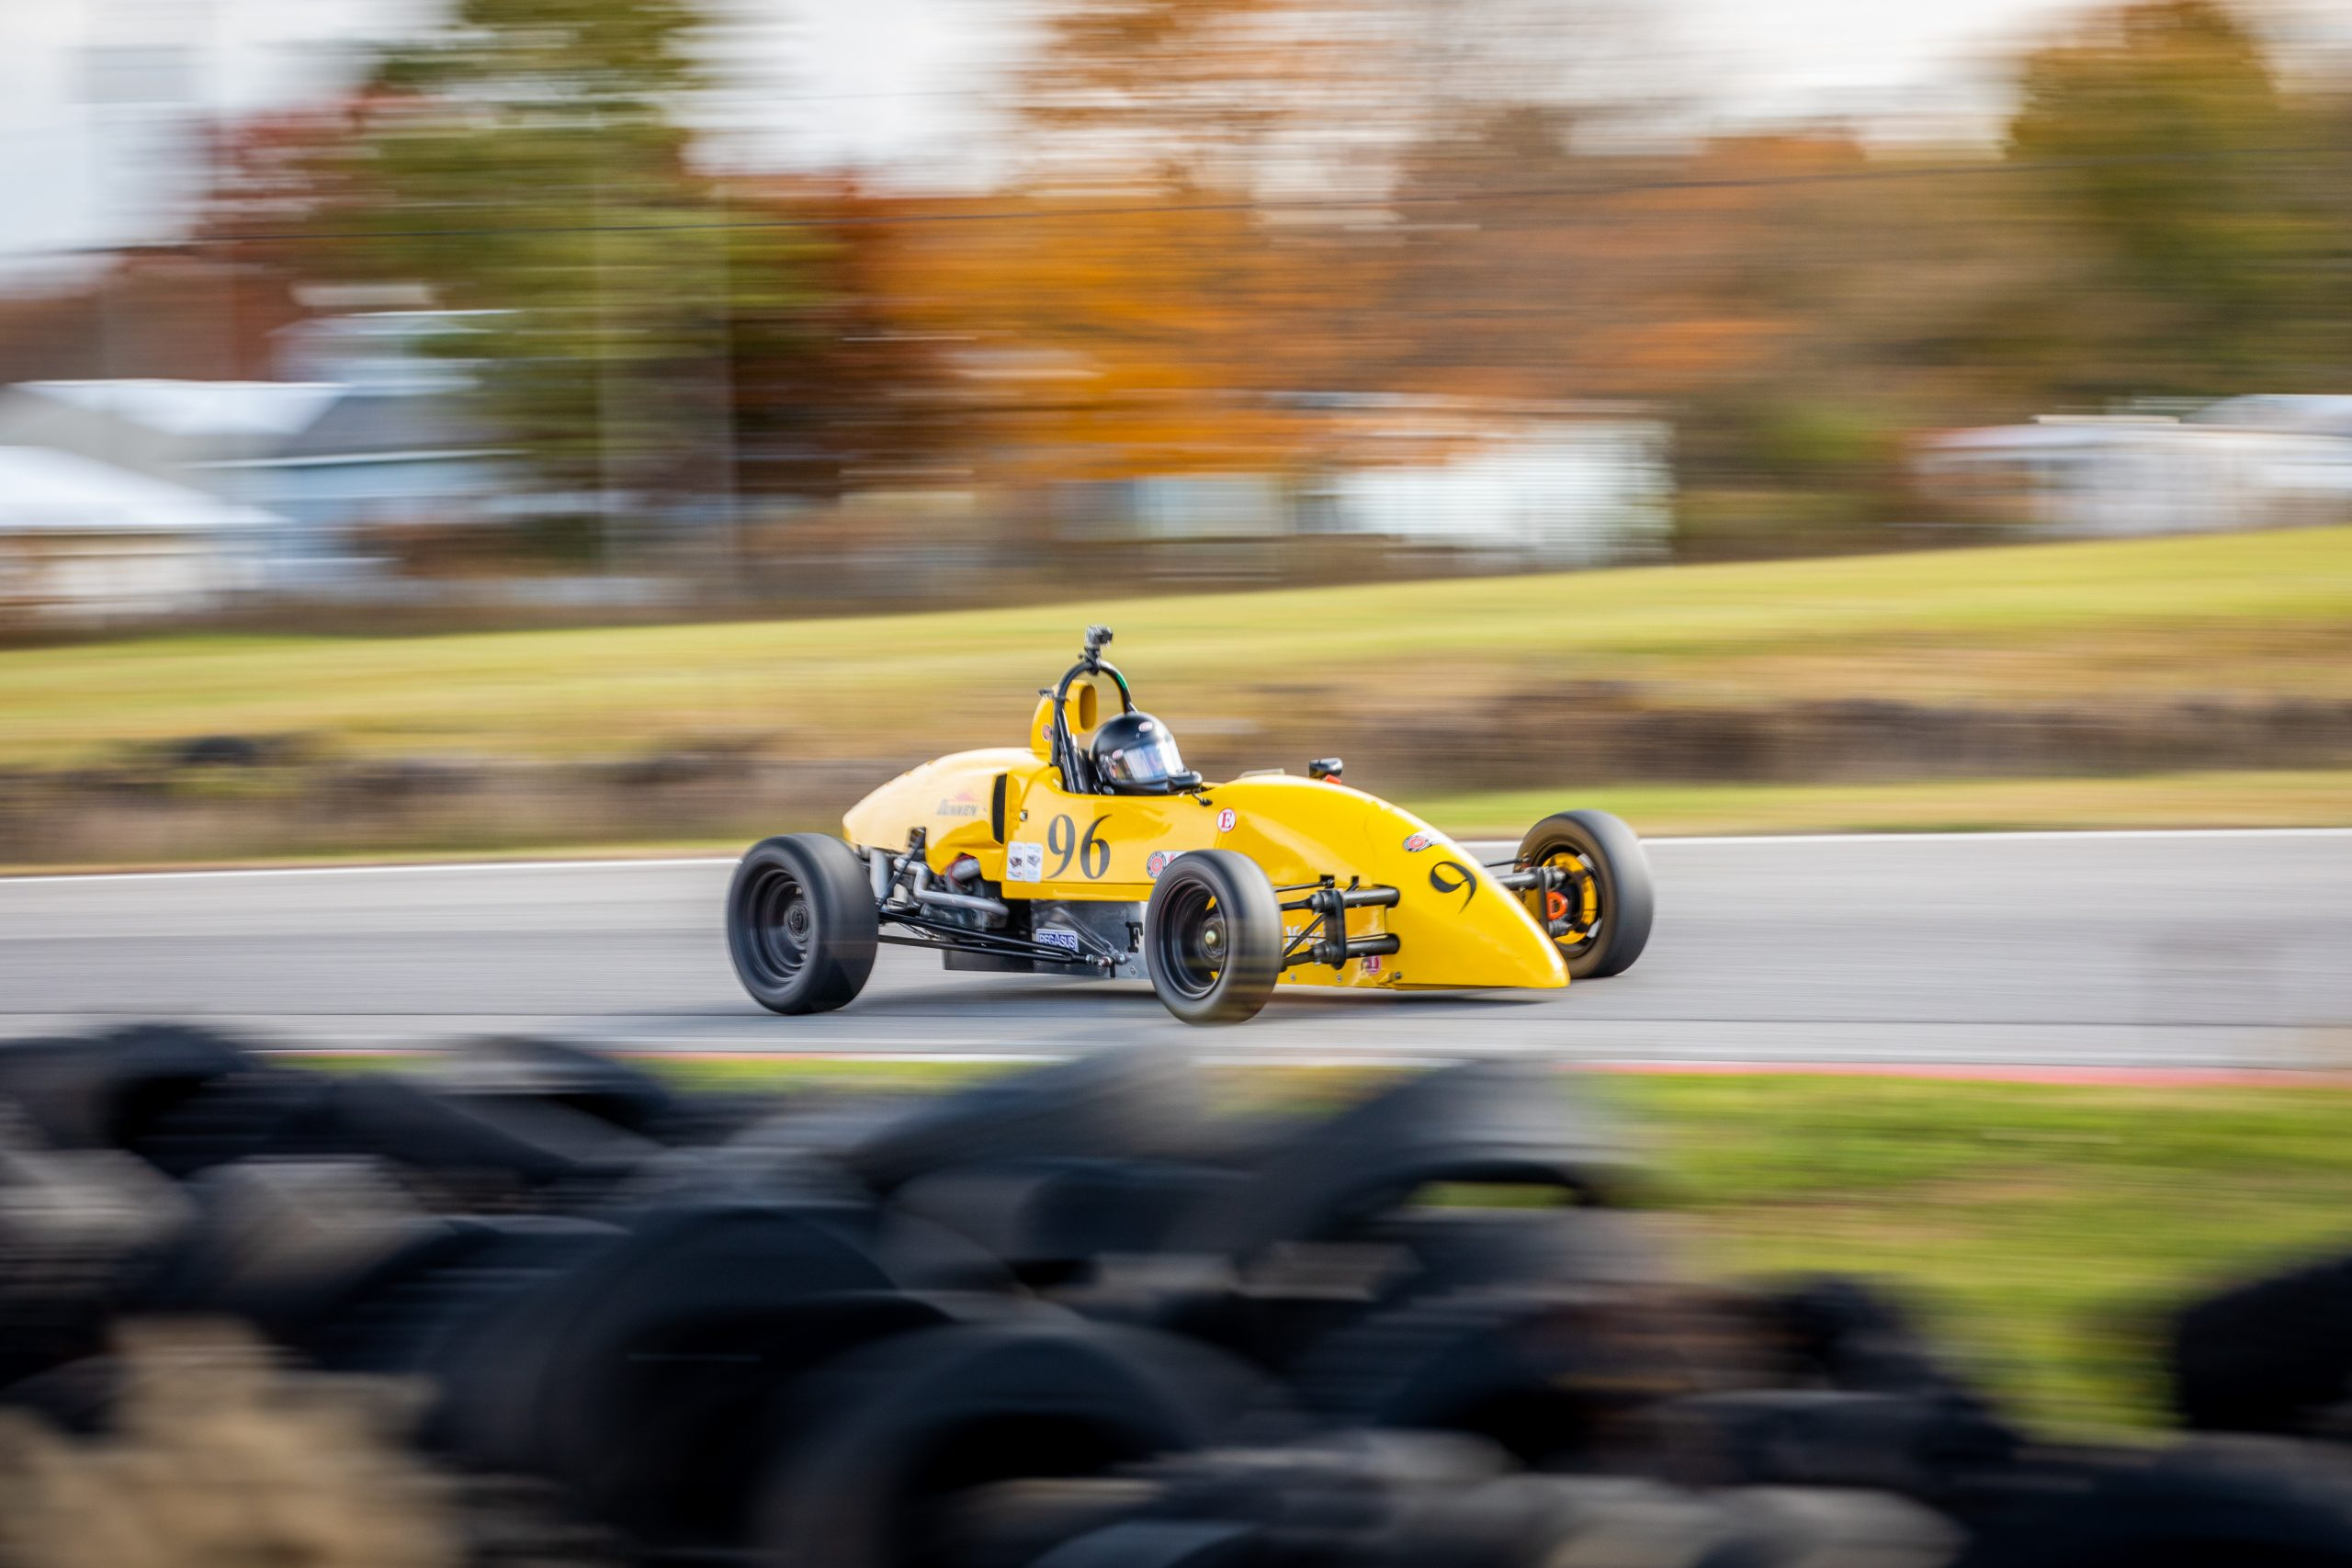 Formula First racecar dynamic action